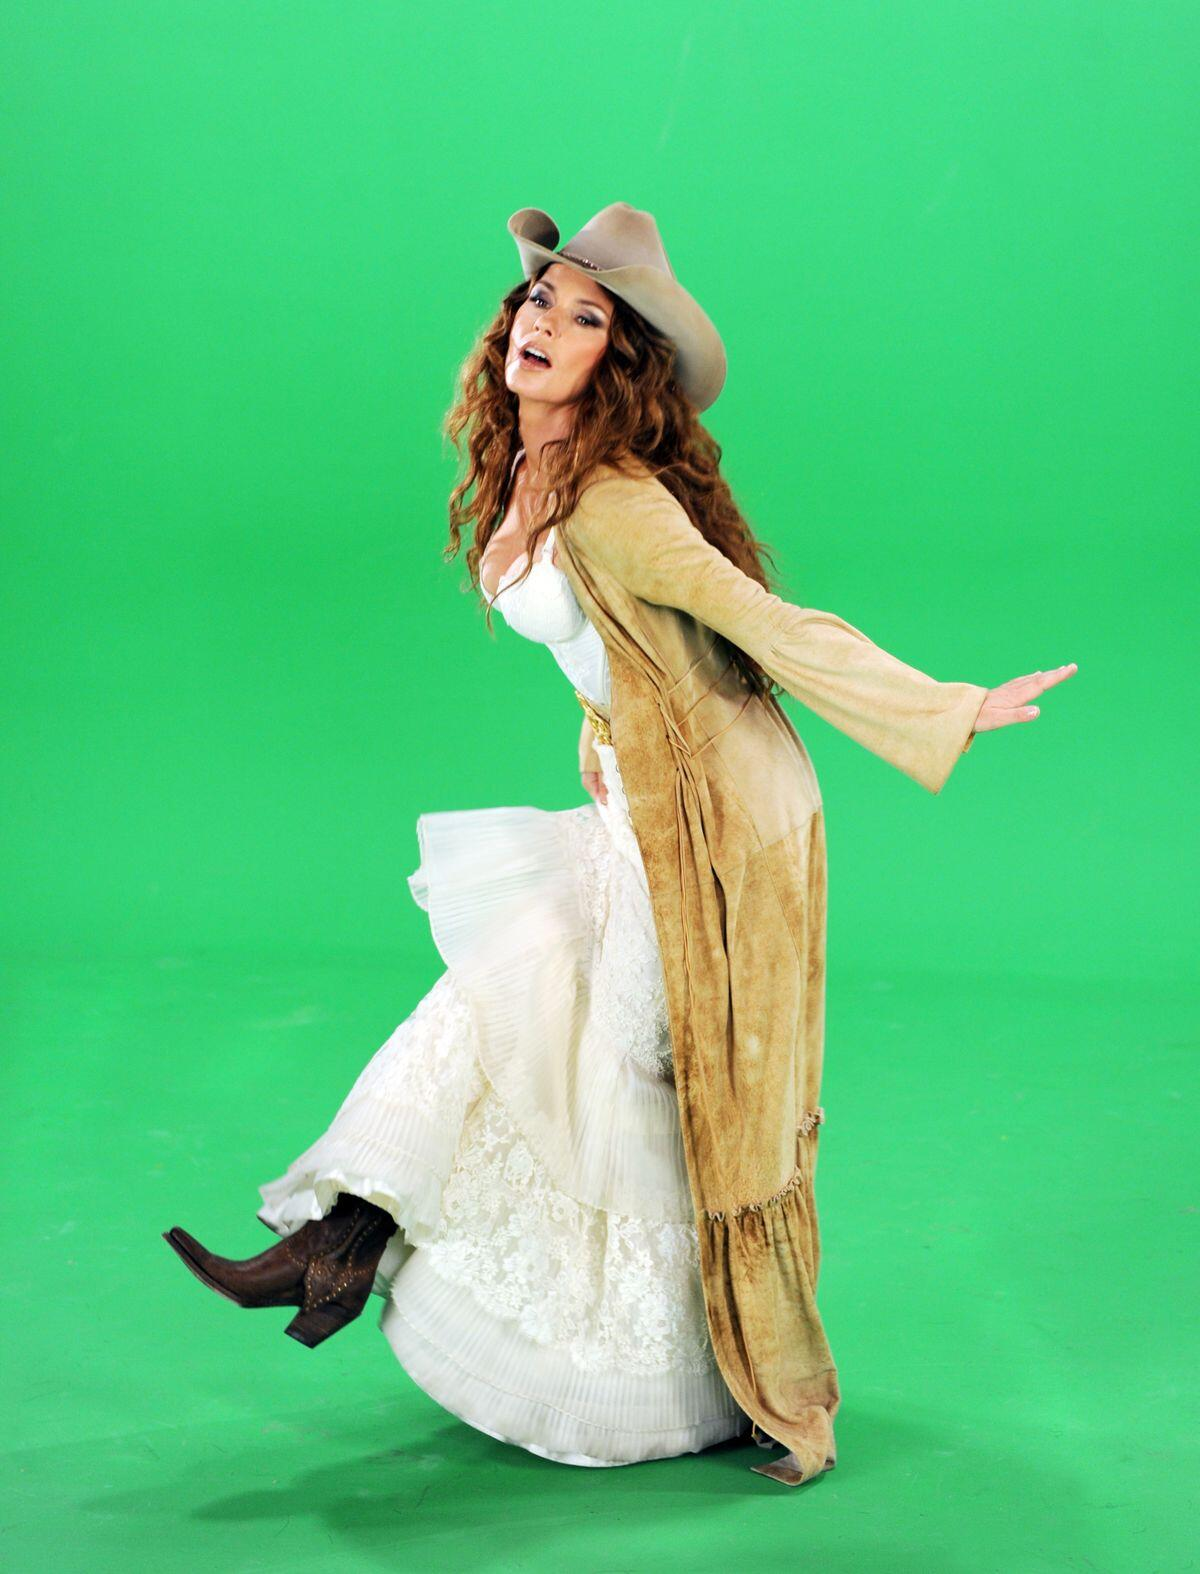 #TBT Filming the saloon scene on the green screen for the #ShaniaInVegas show! http://t.co/q4ME3BvAG1